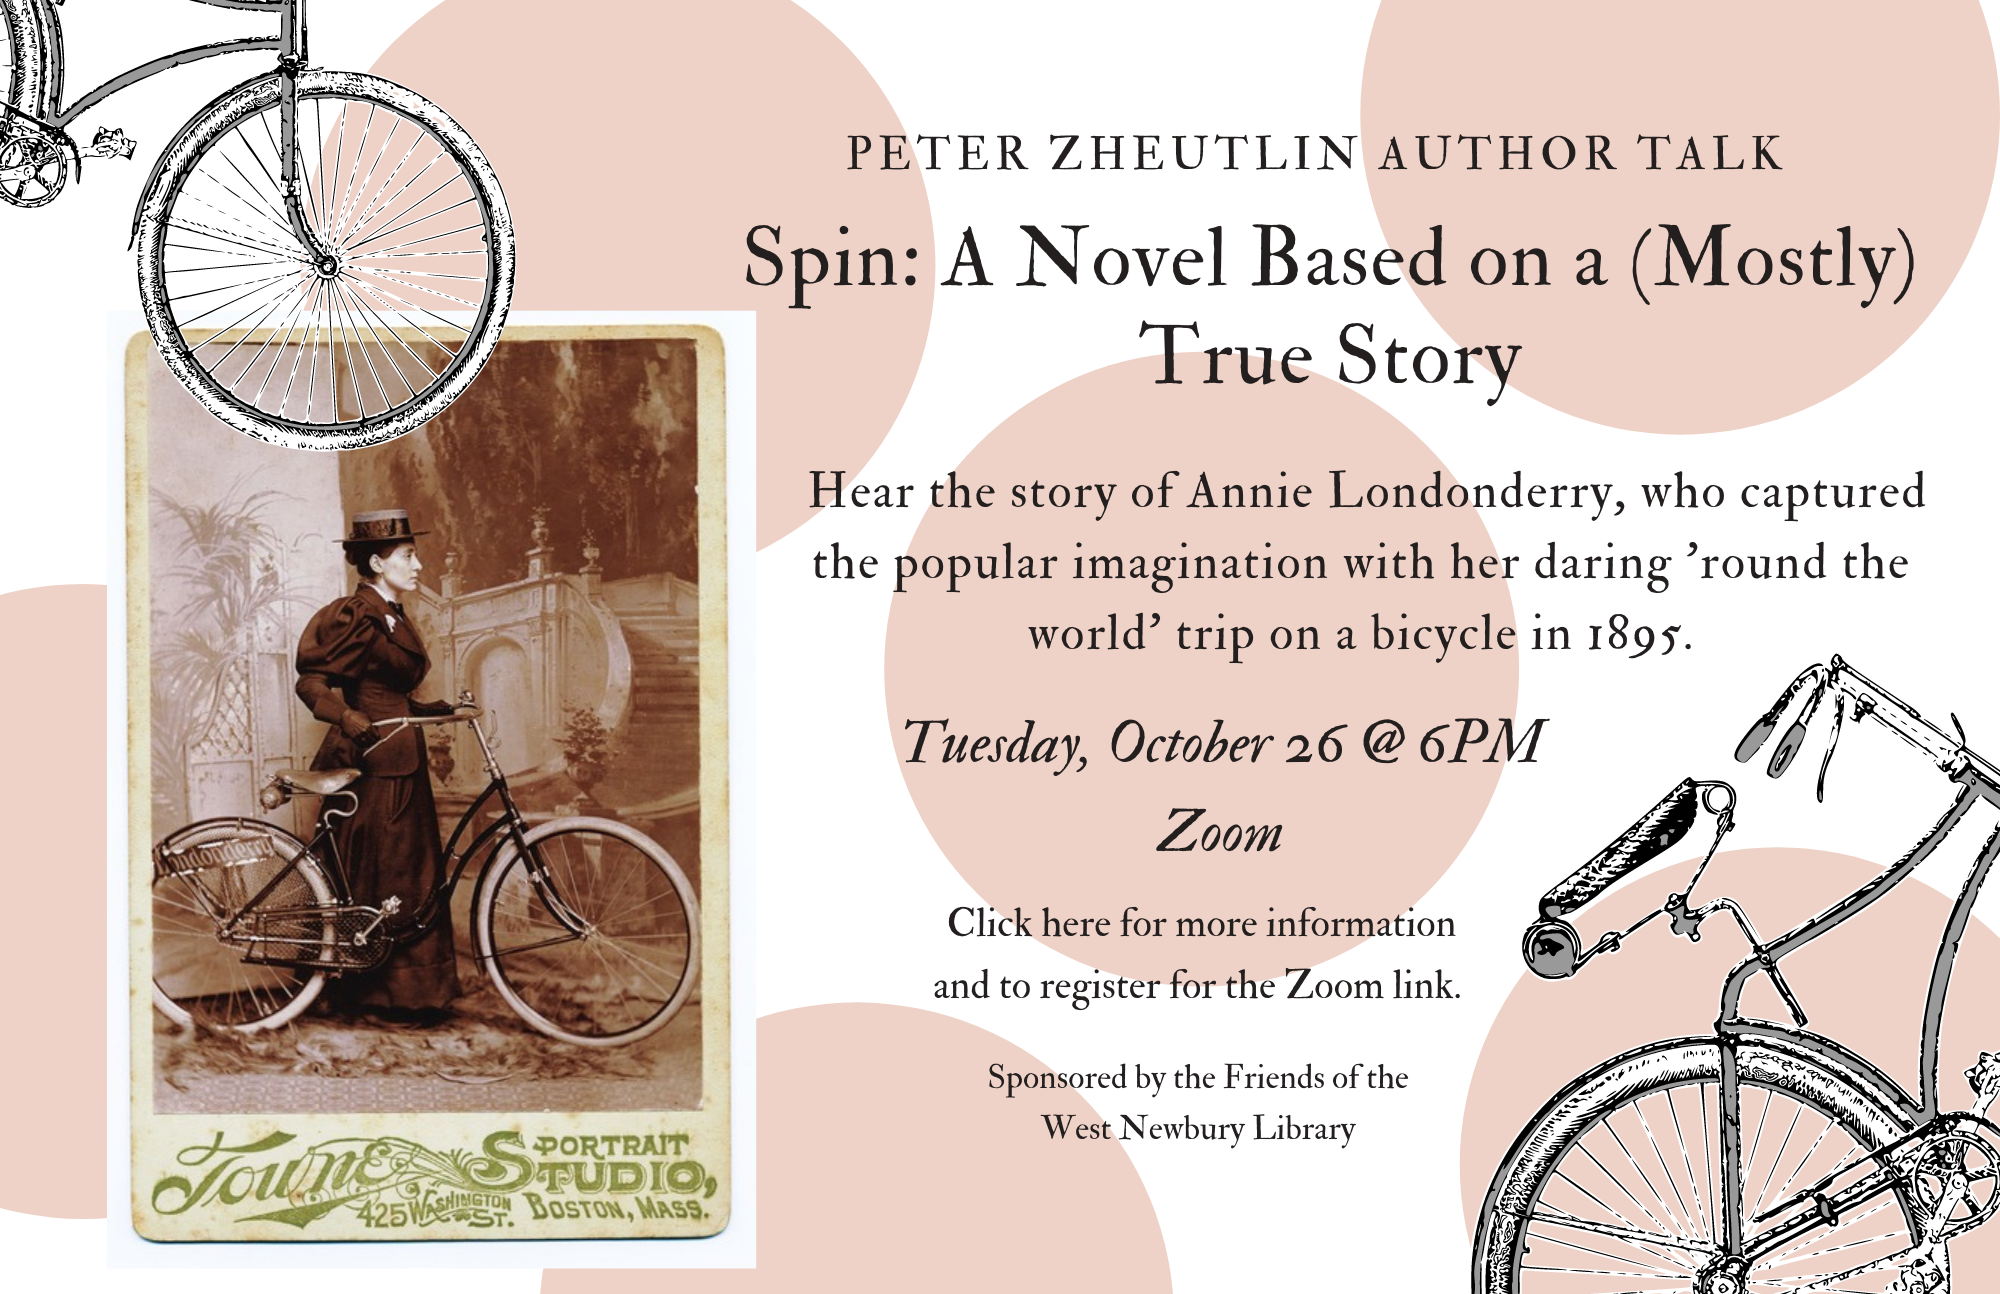 Peter Zheytlin Author Talk: Spin 10/26 @ 6 pm click here to register.